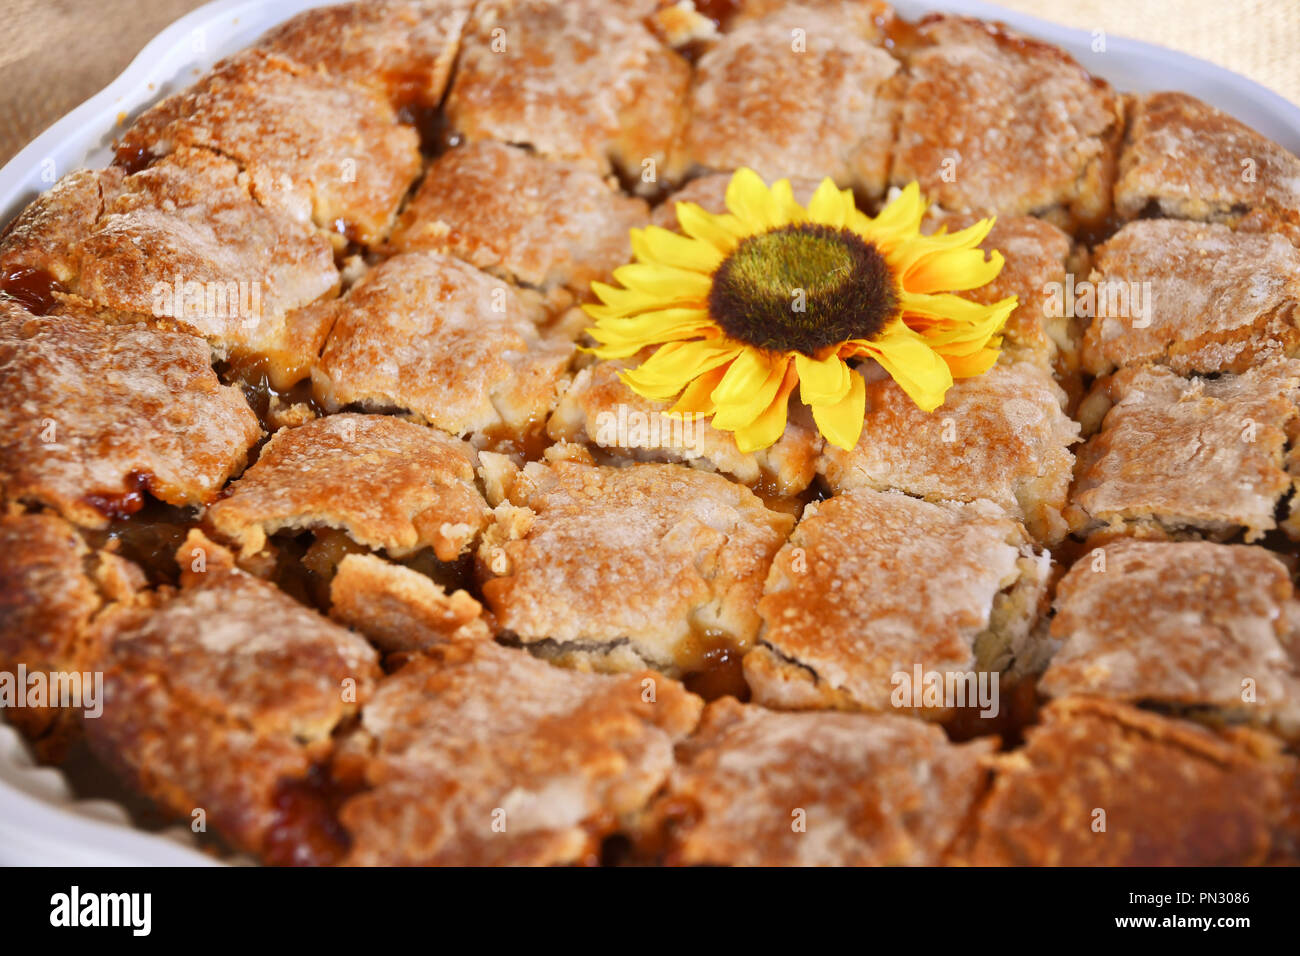 Apple pie with a faux sunflower cut up in a white tray Stock Photo